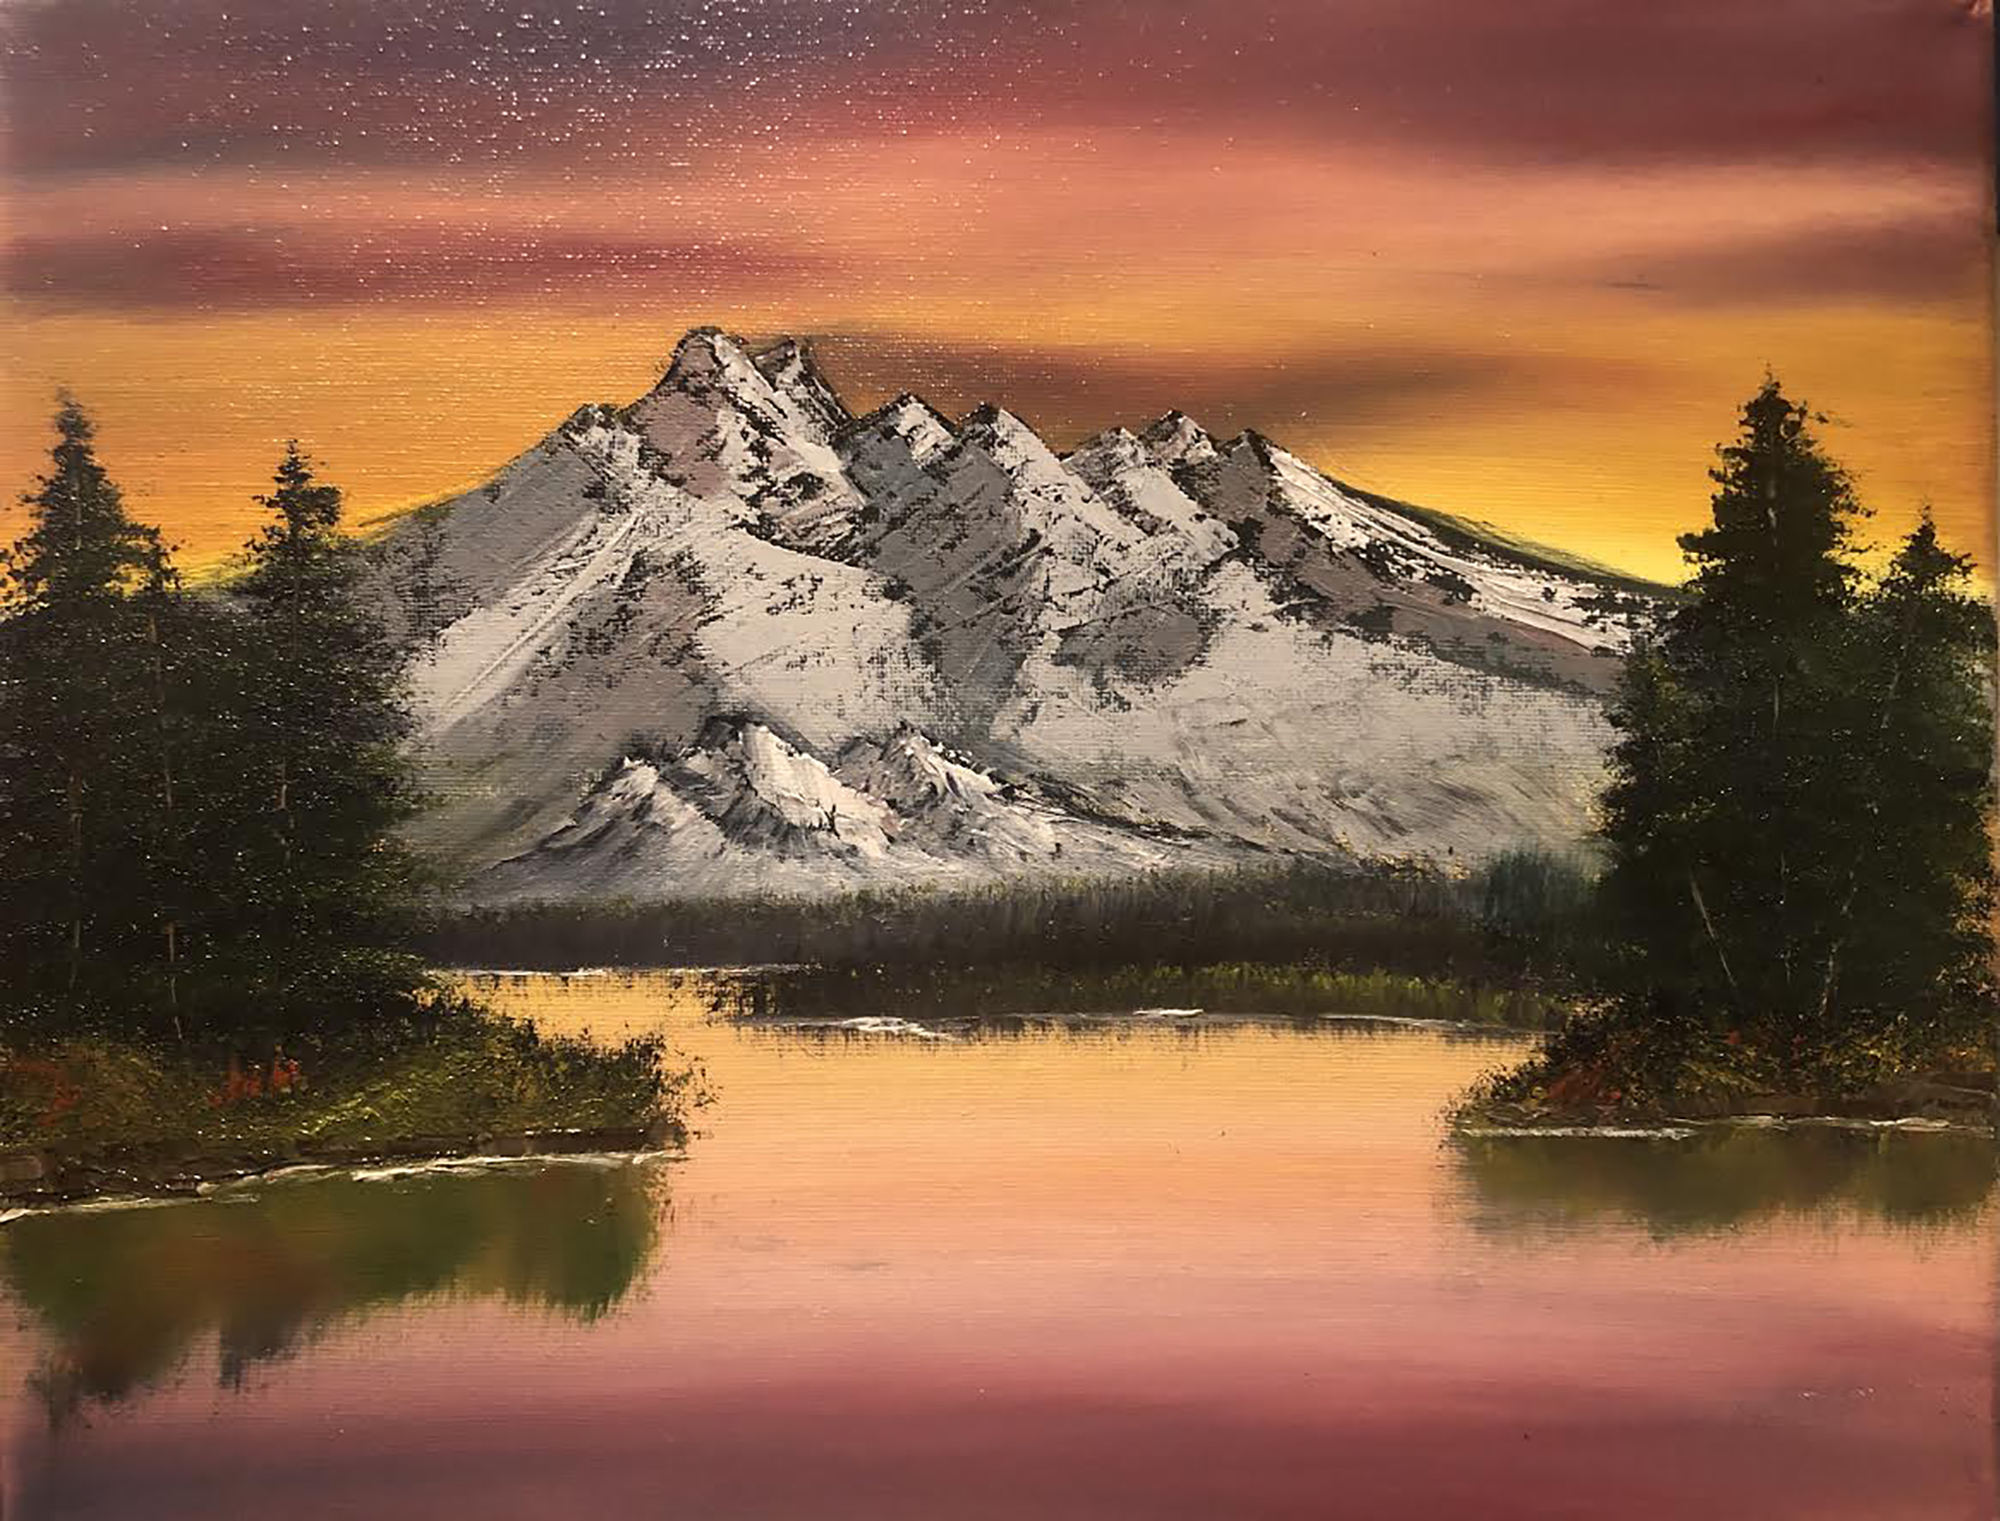 Award of Excellence 1st. Kate Van Hooser, Sunset and mountains oil painting